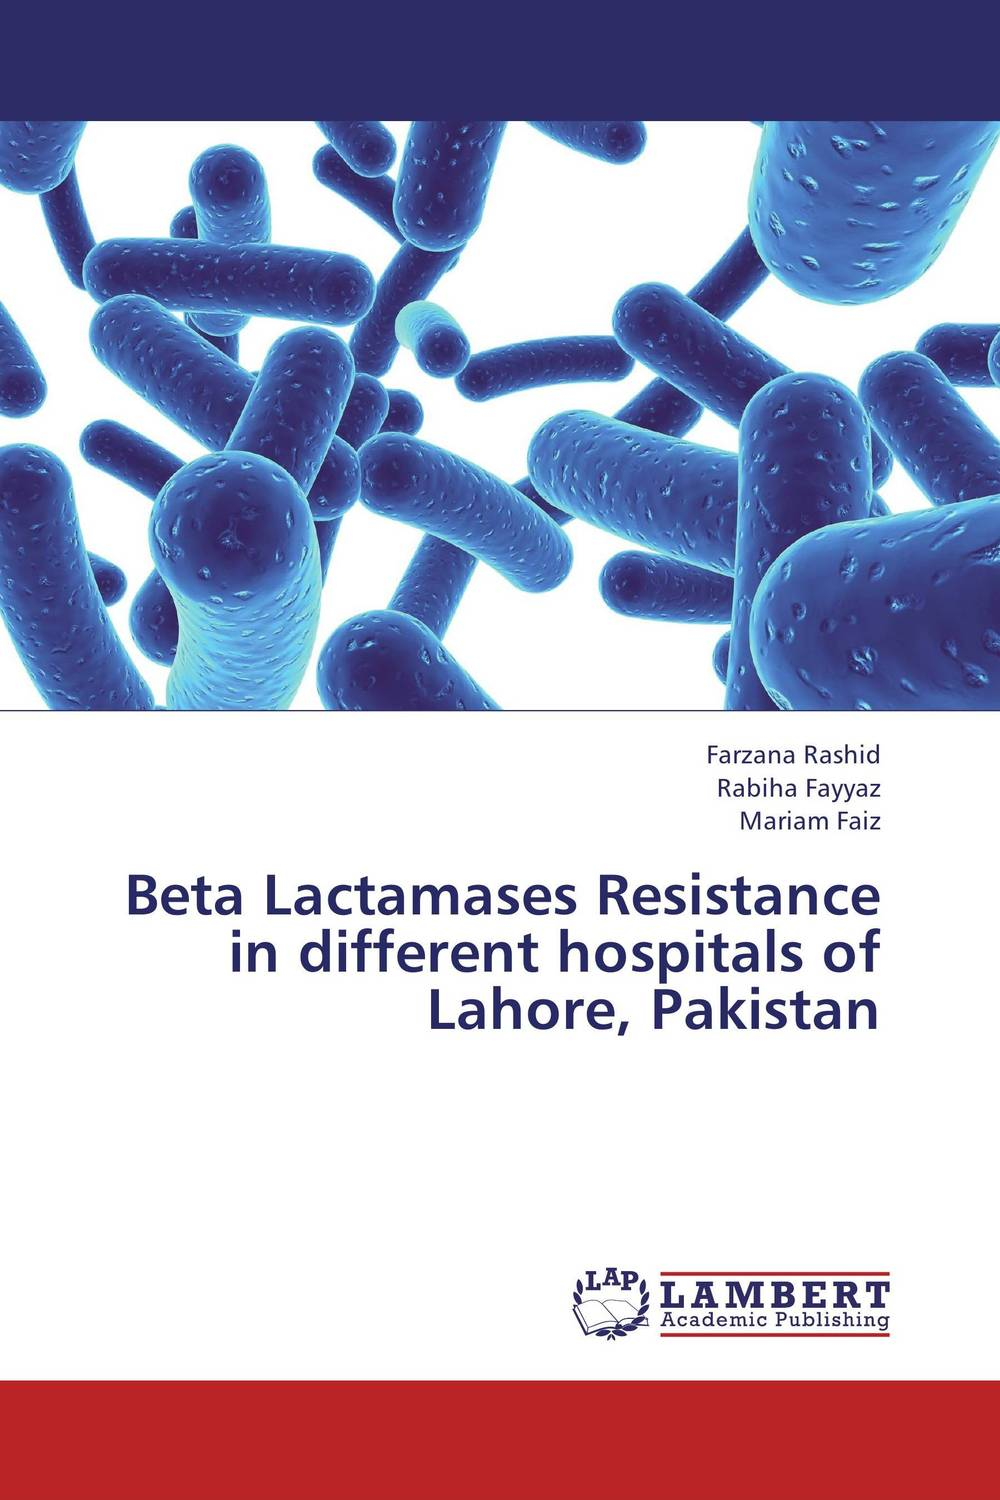 Beta Lactamases Resistance in different hospitals of Lahore, Pakistan tapan kumar dutta and parimal roychoudhury diagnosis and characterization of bacterial pathogens in animal